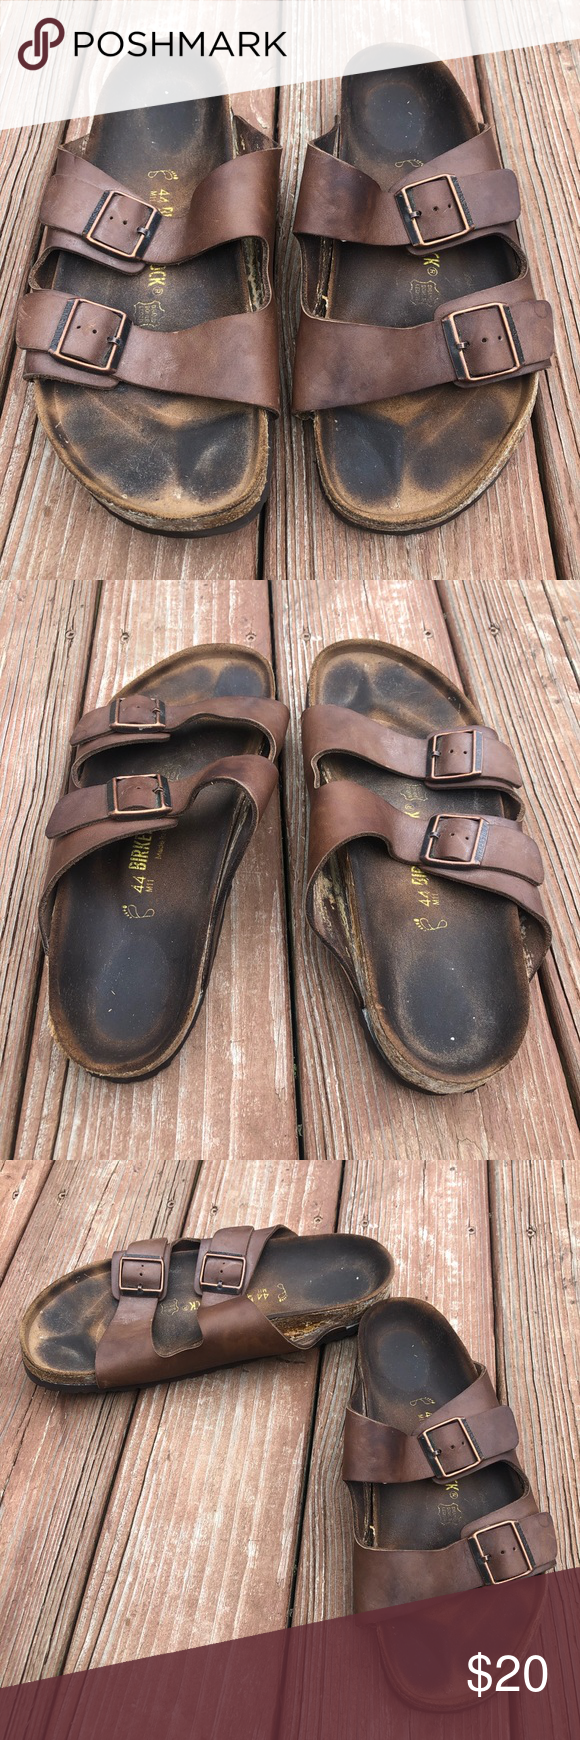 Birkenstocks Your To New Fitting Happy Feet101 – Feet Your